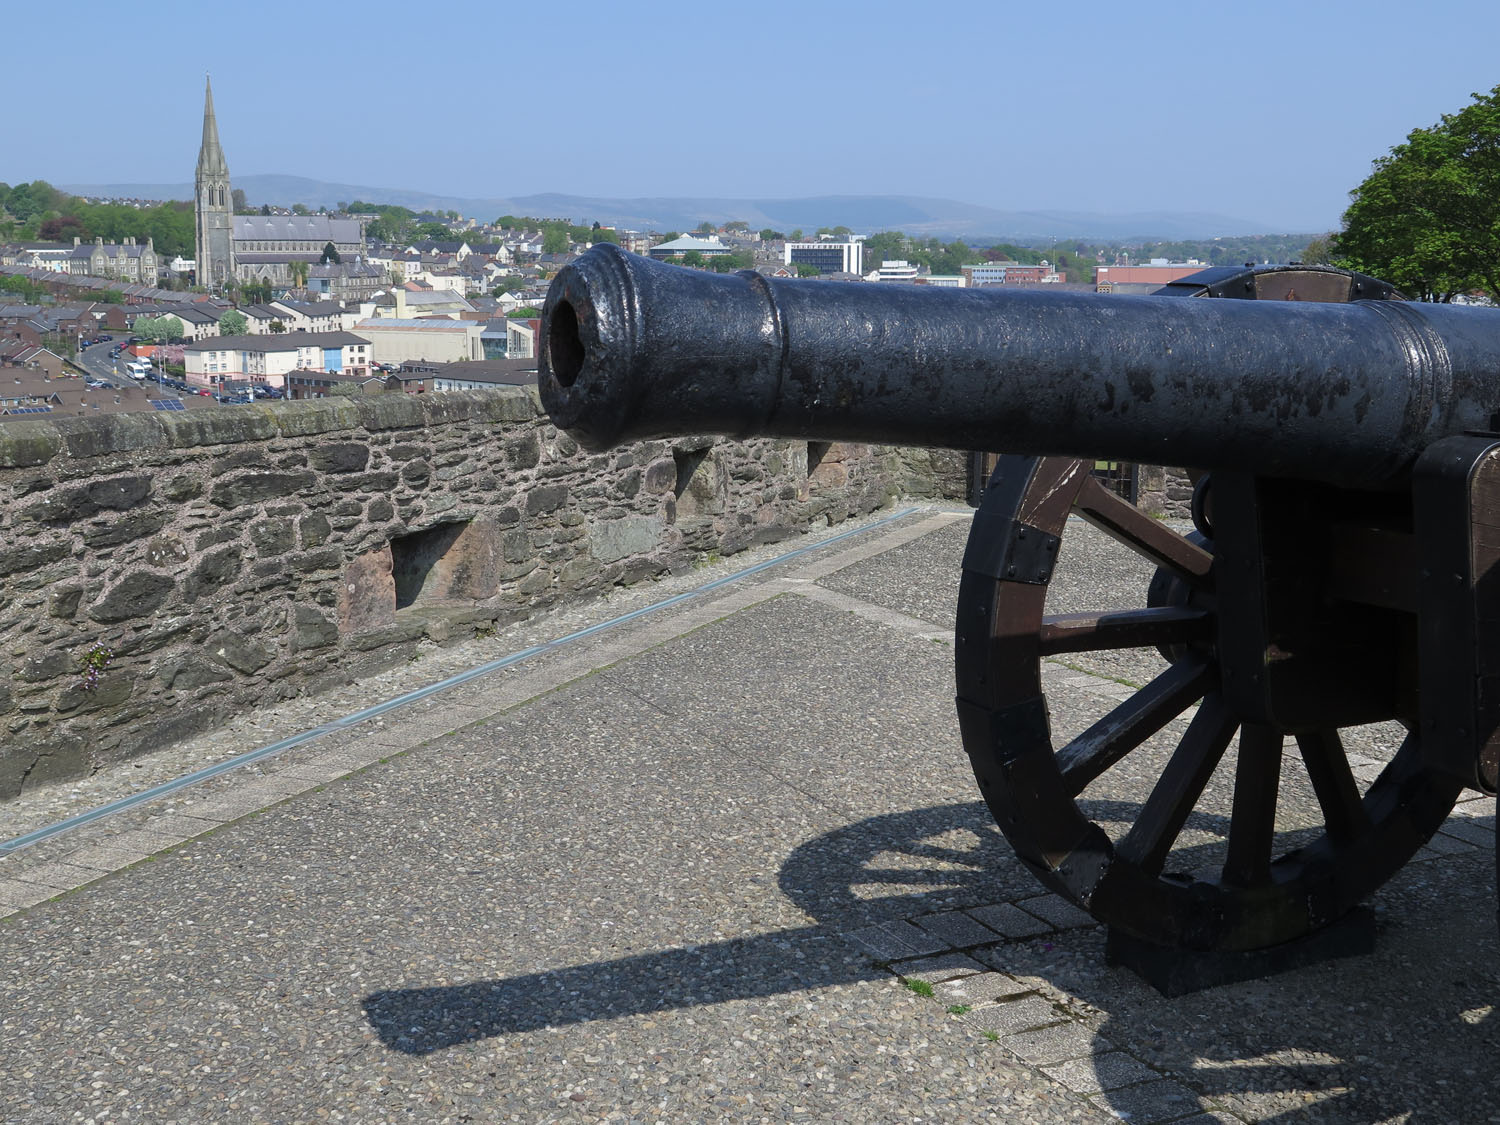 Northern-Ireland-Derry-Londonderry-Old-City-Wall-Cannon